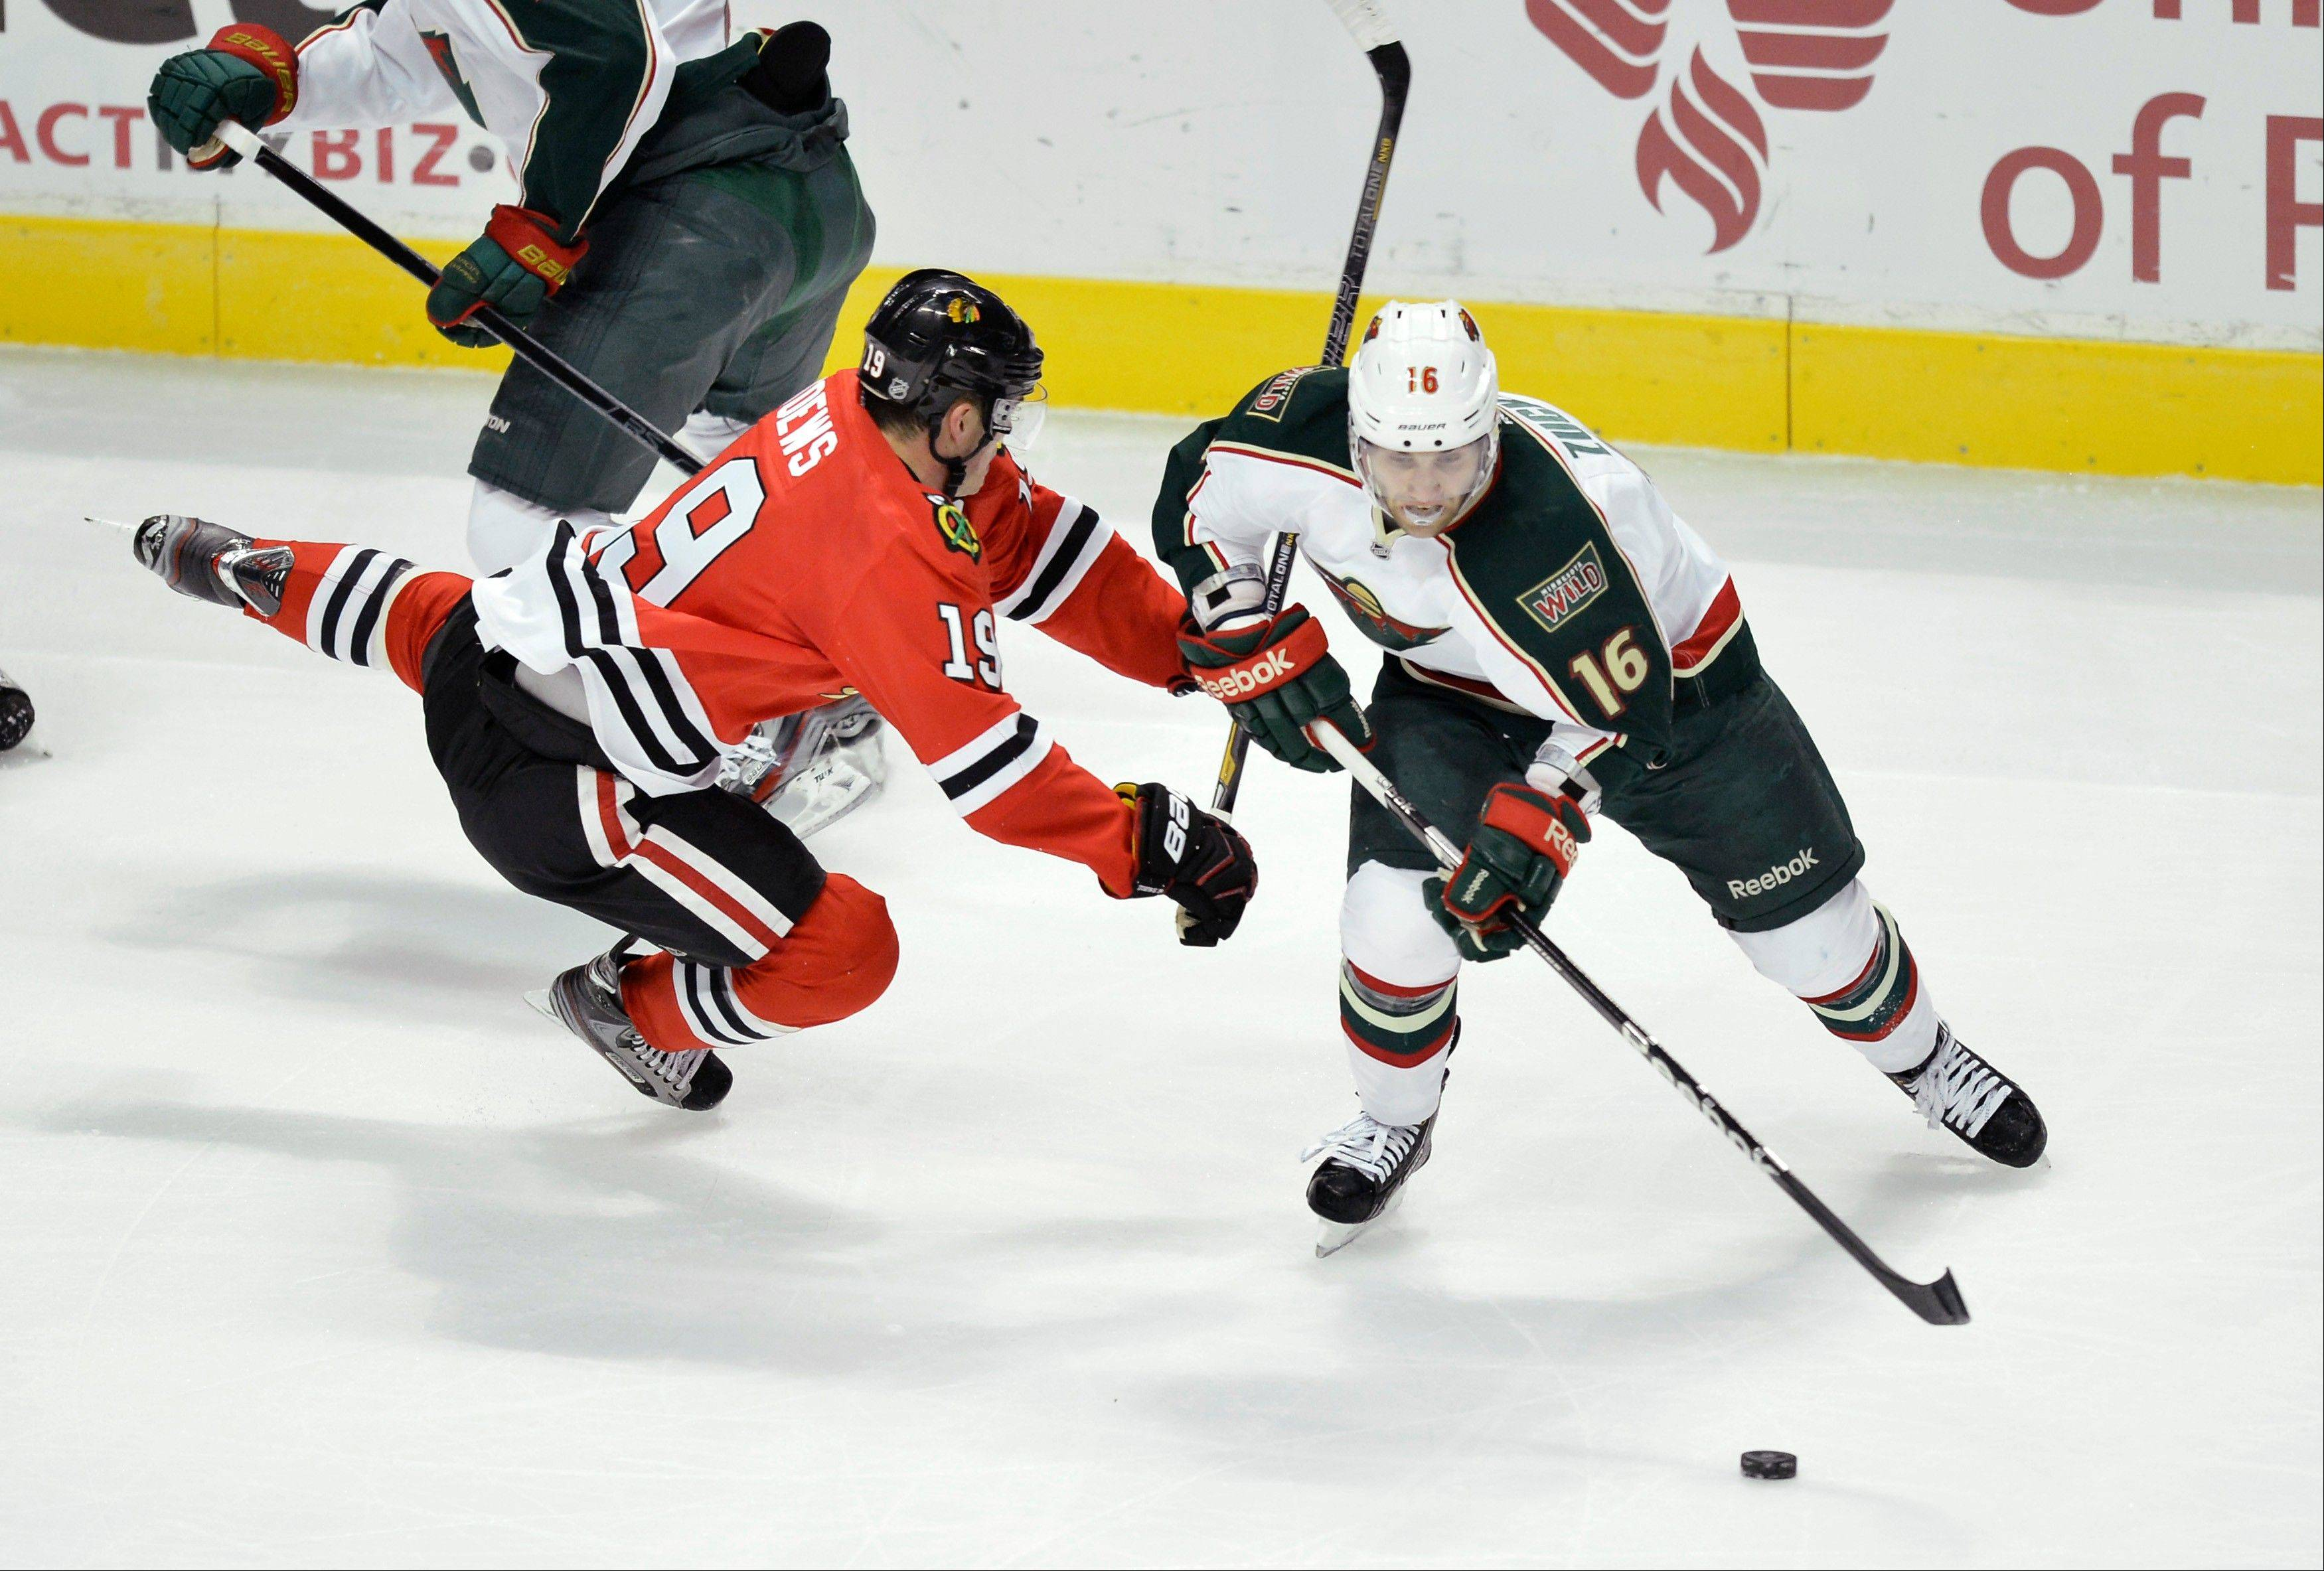 Chicago Blackhawks center Jonathan Toews, left, falls as Minnesota Wild left wing Jason Zucker skates with the puck during the first period.